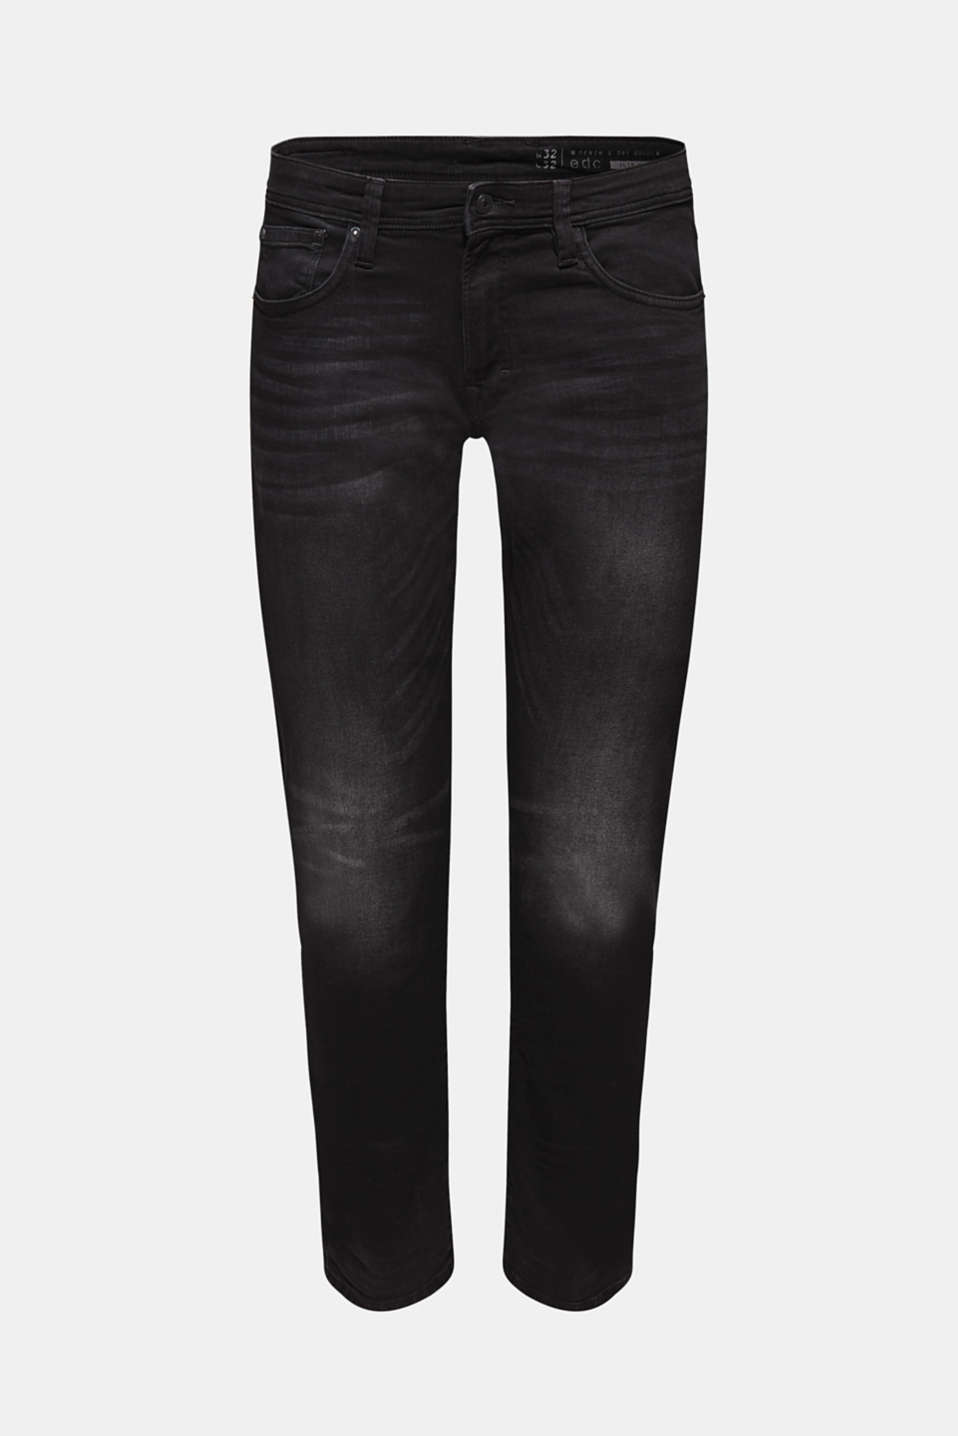 Colourful garment wash and casual wrinkled effects give these black jeans in organic cotton with stretch their cool!